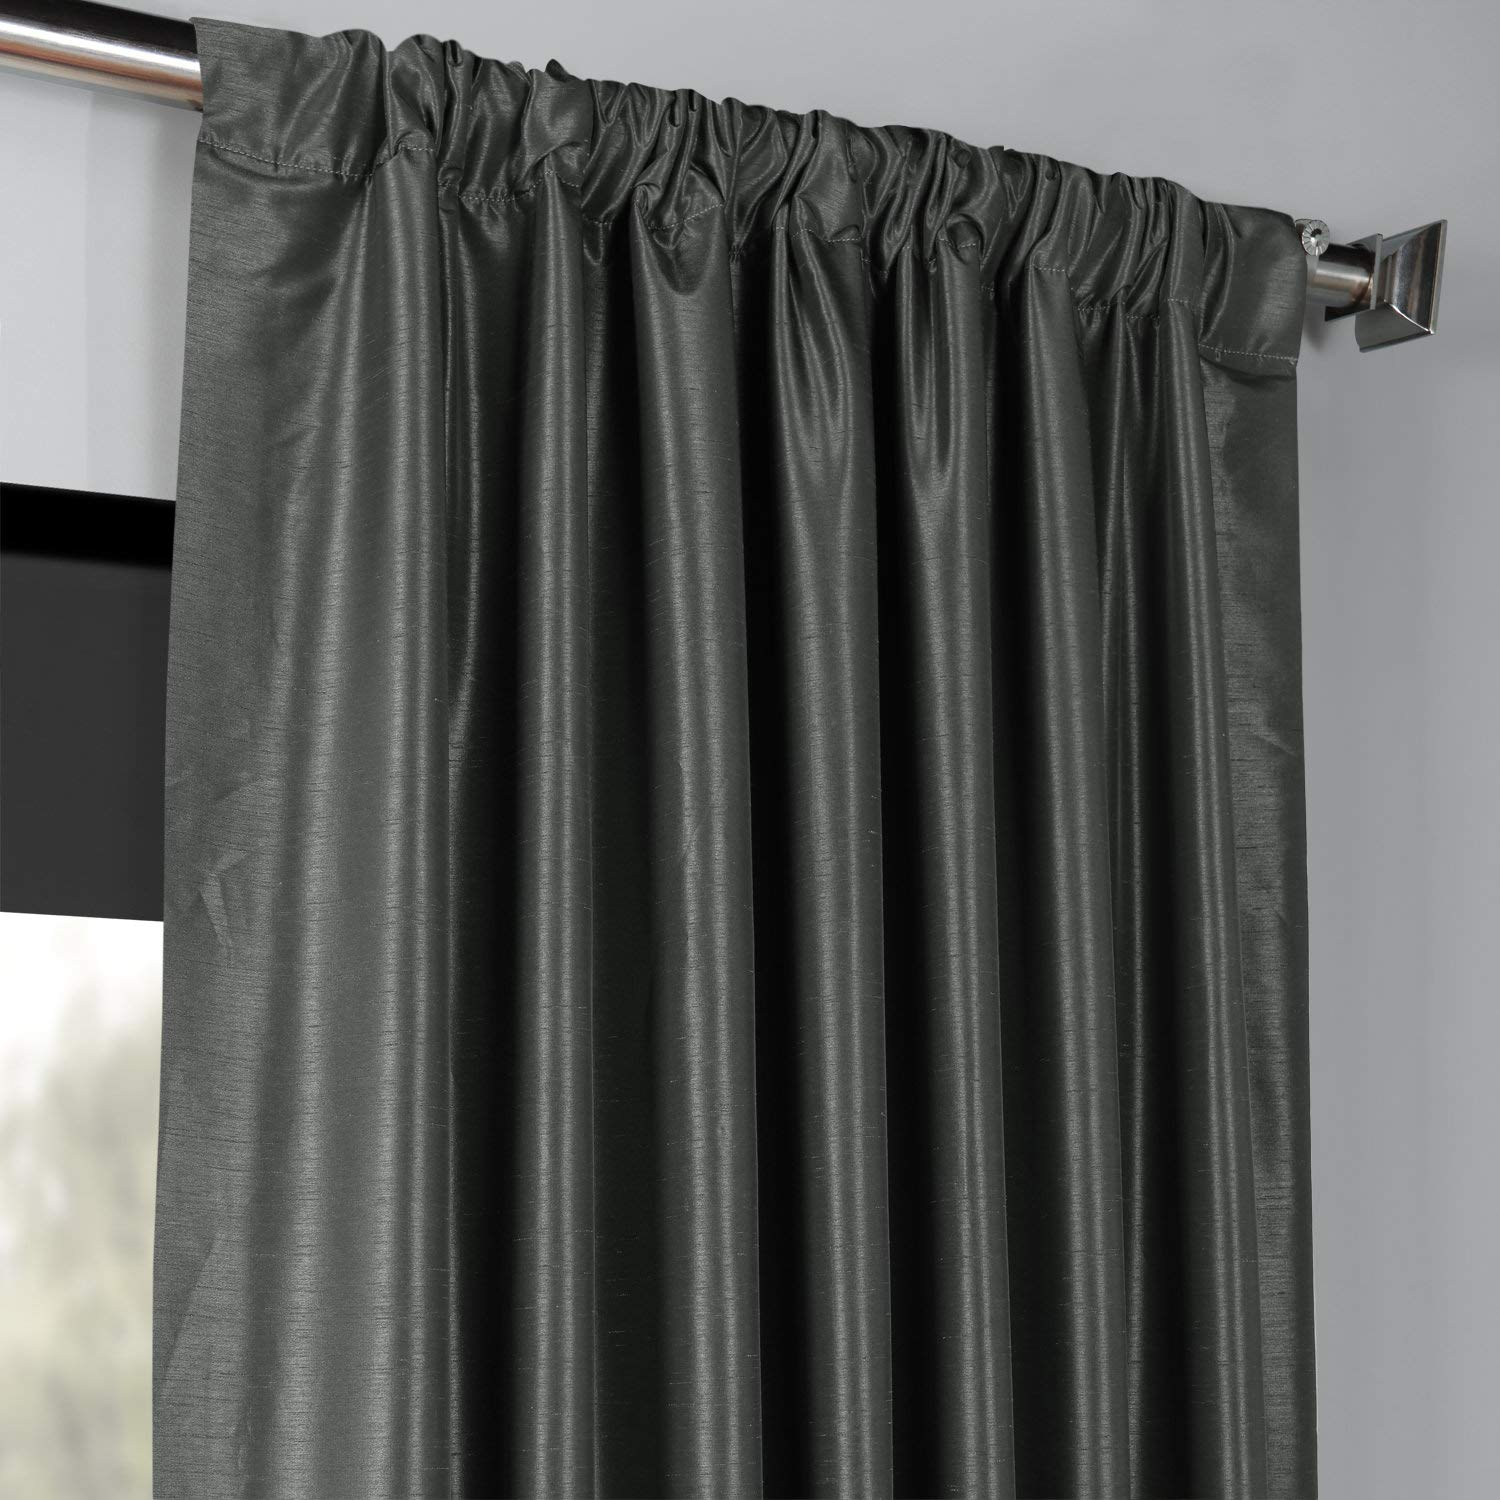 50 X 108 Exclusive Fabrics /& Furnishings PDCH-KBS1BO-108 Blackout Vintage Textured Faux Dupioni Curtain Ice